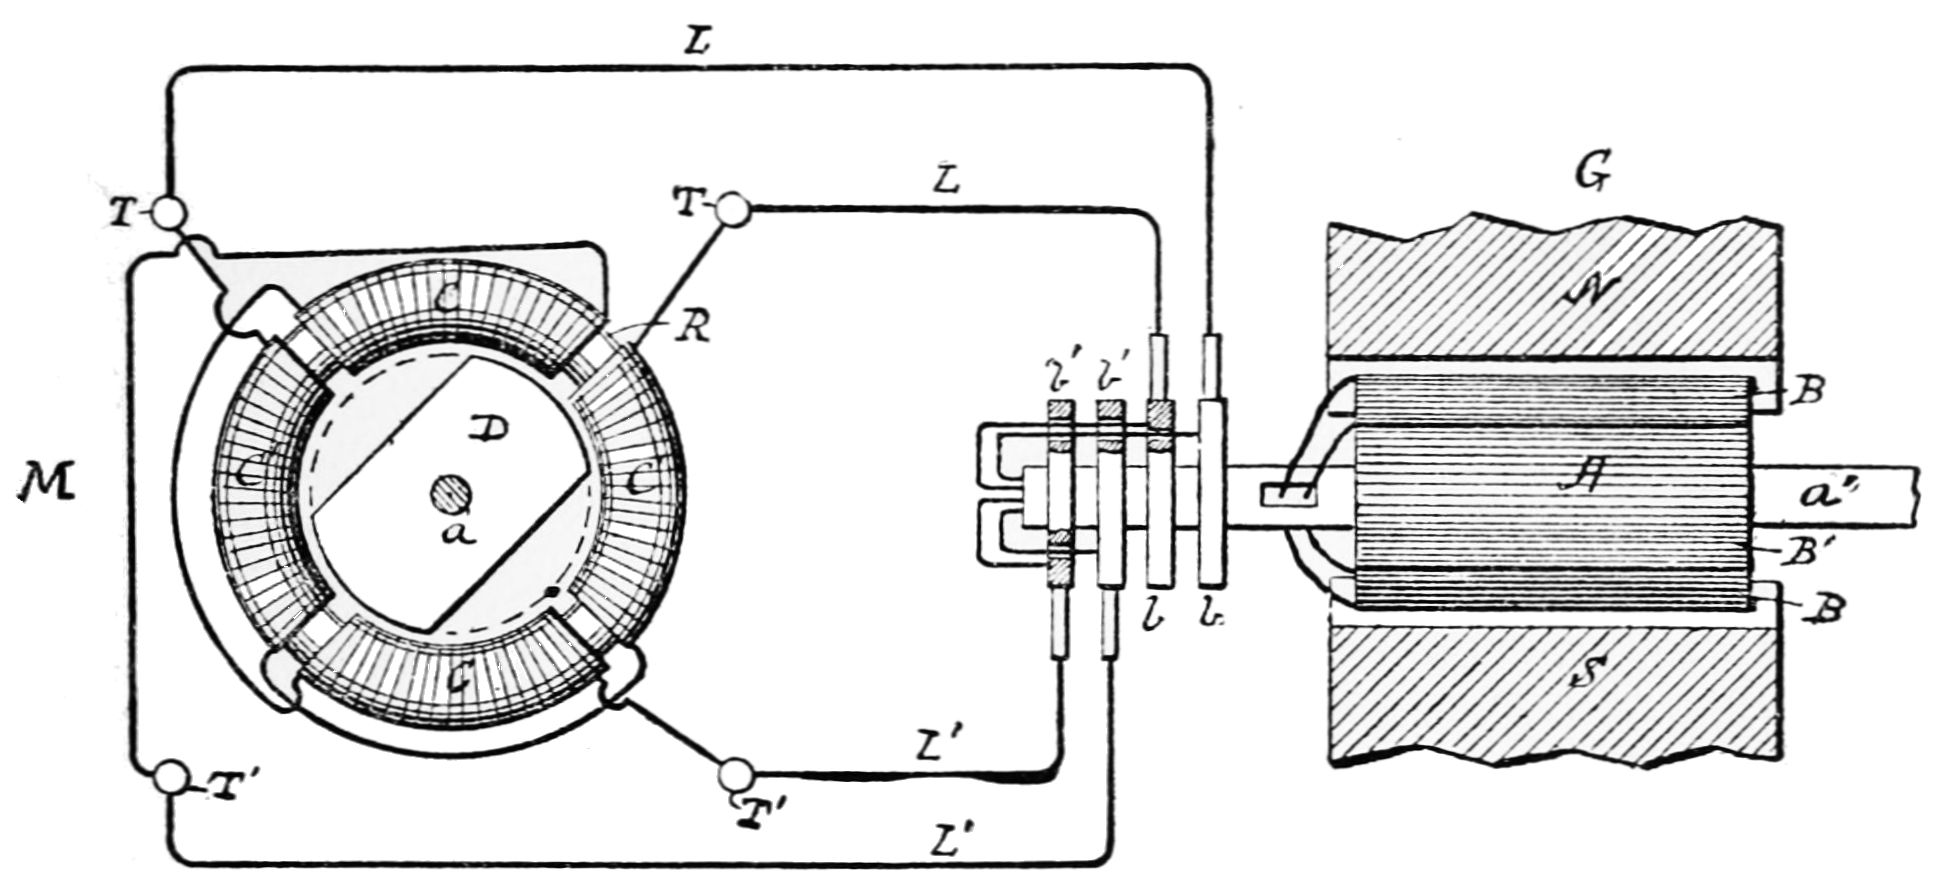 Filepsm V43 D757 Diagram Of The Tesla Motor Connections Electric